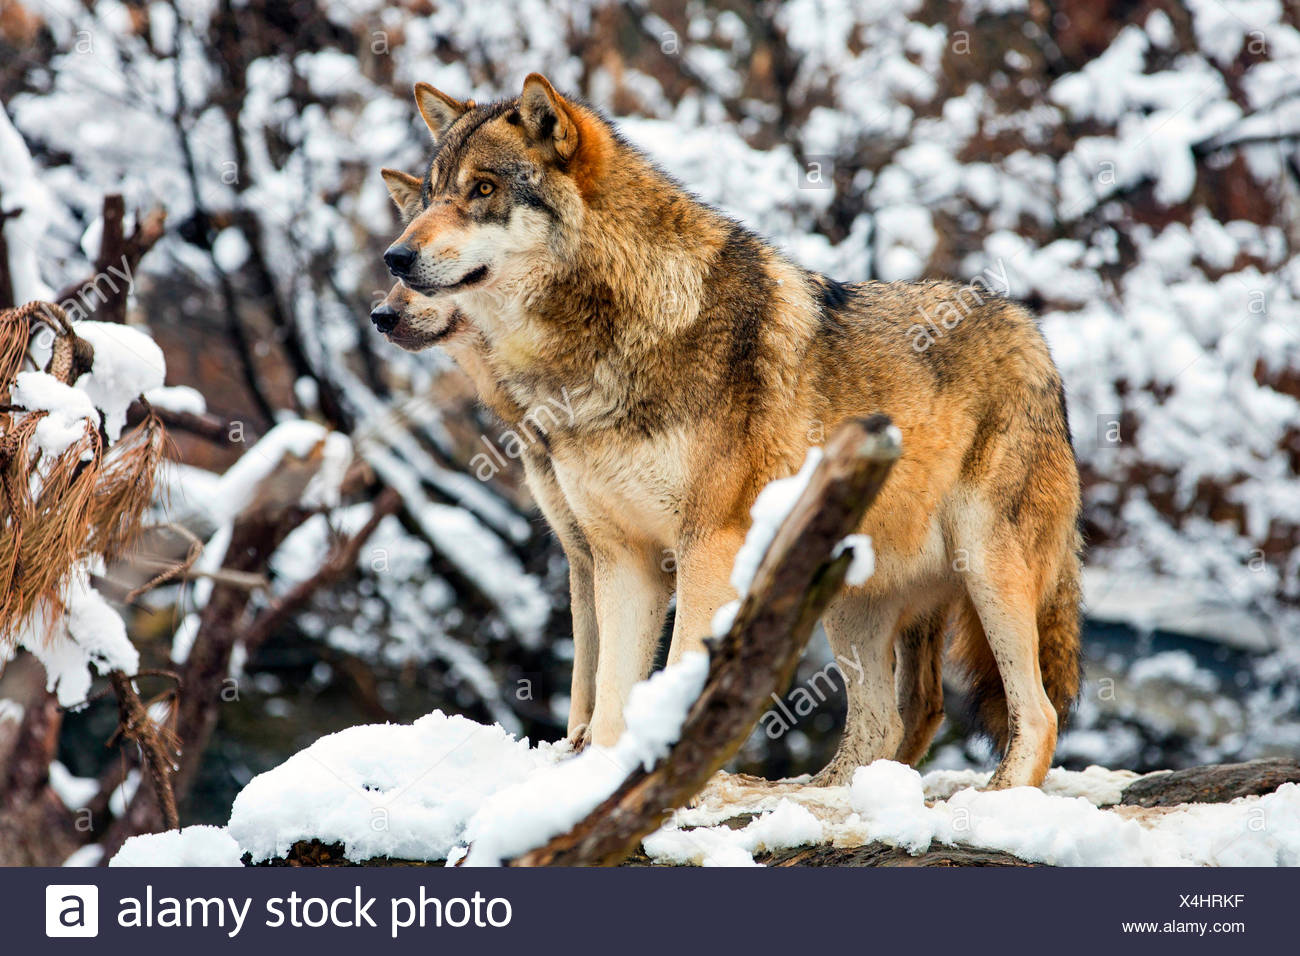 European gray wolf (Canis lupus lupus), two wolves securing, on overturned tree trunk in snowy landscape, Germany - Stock Image